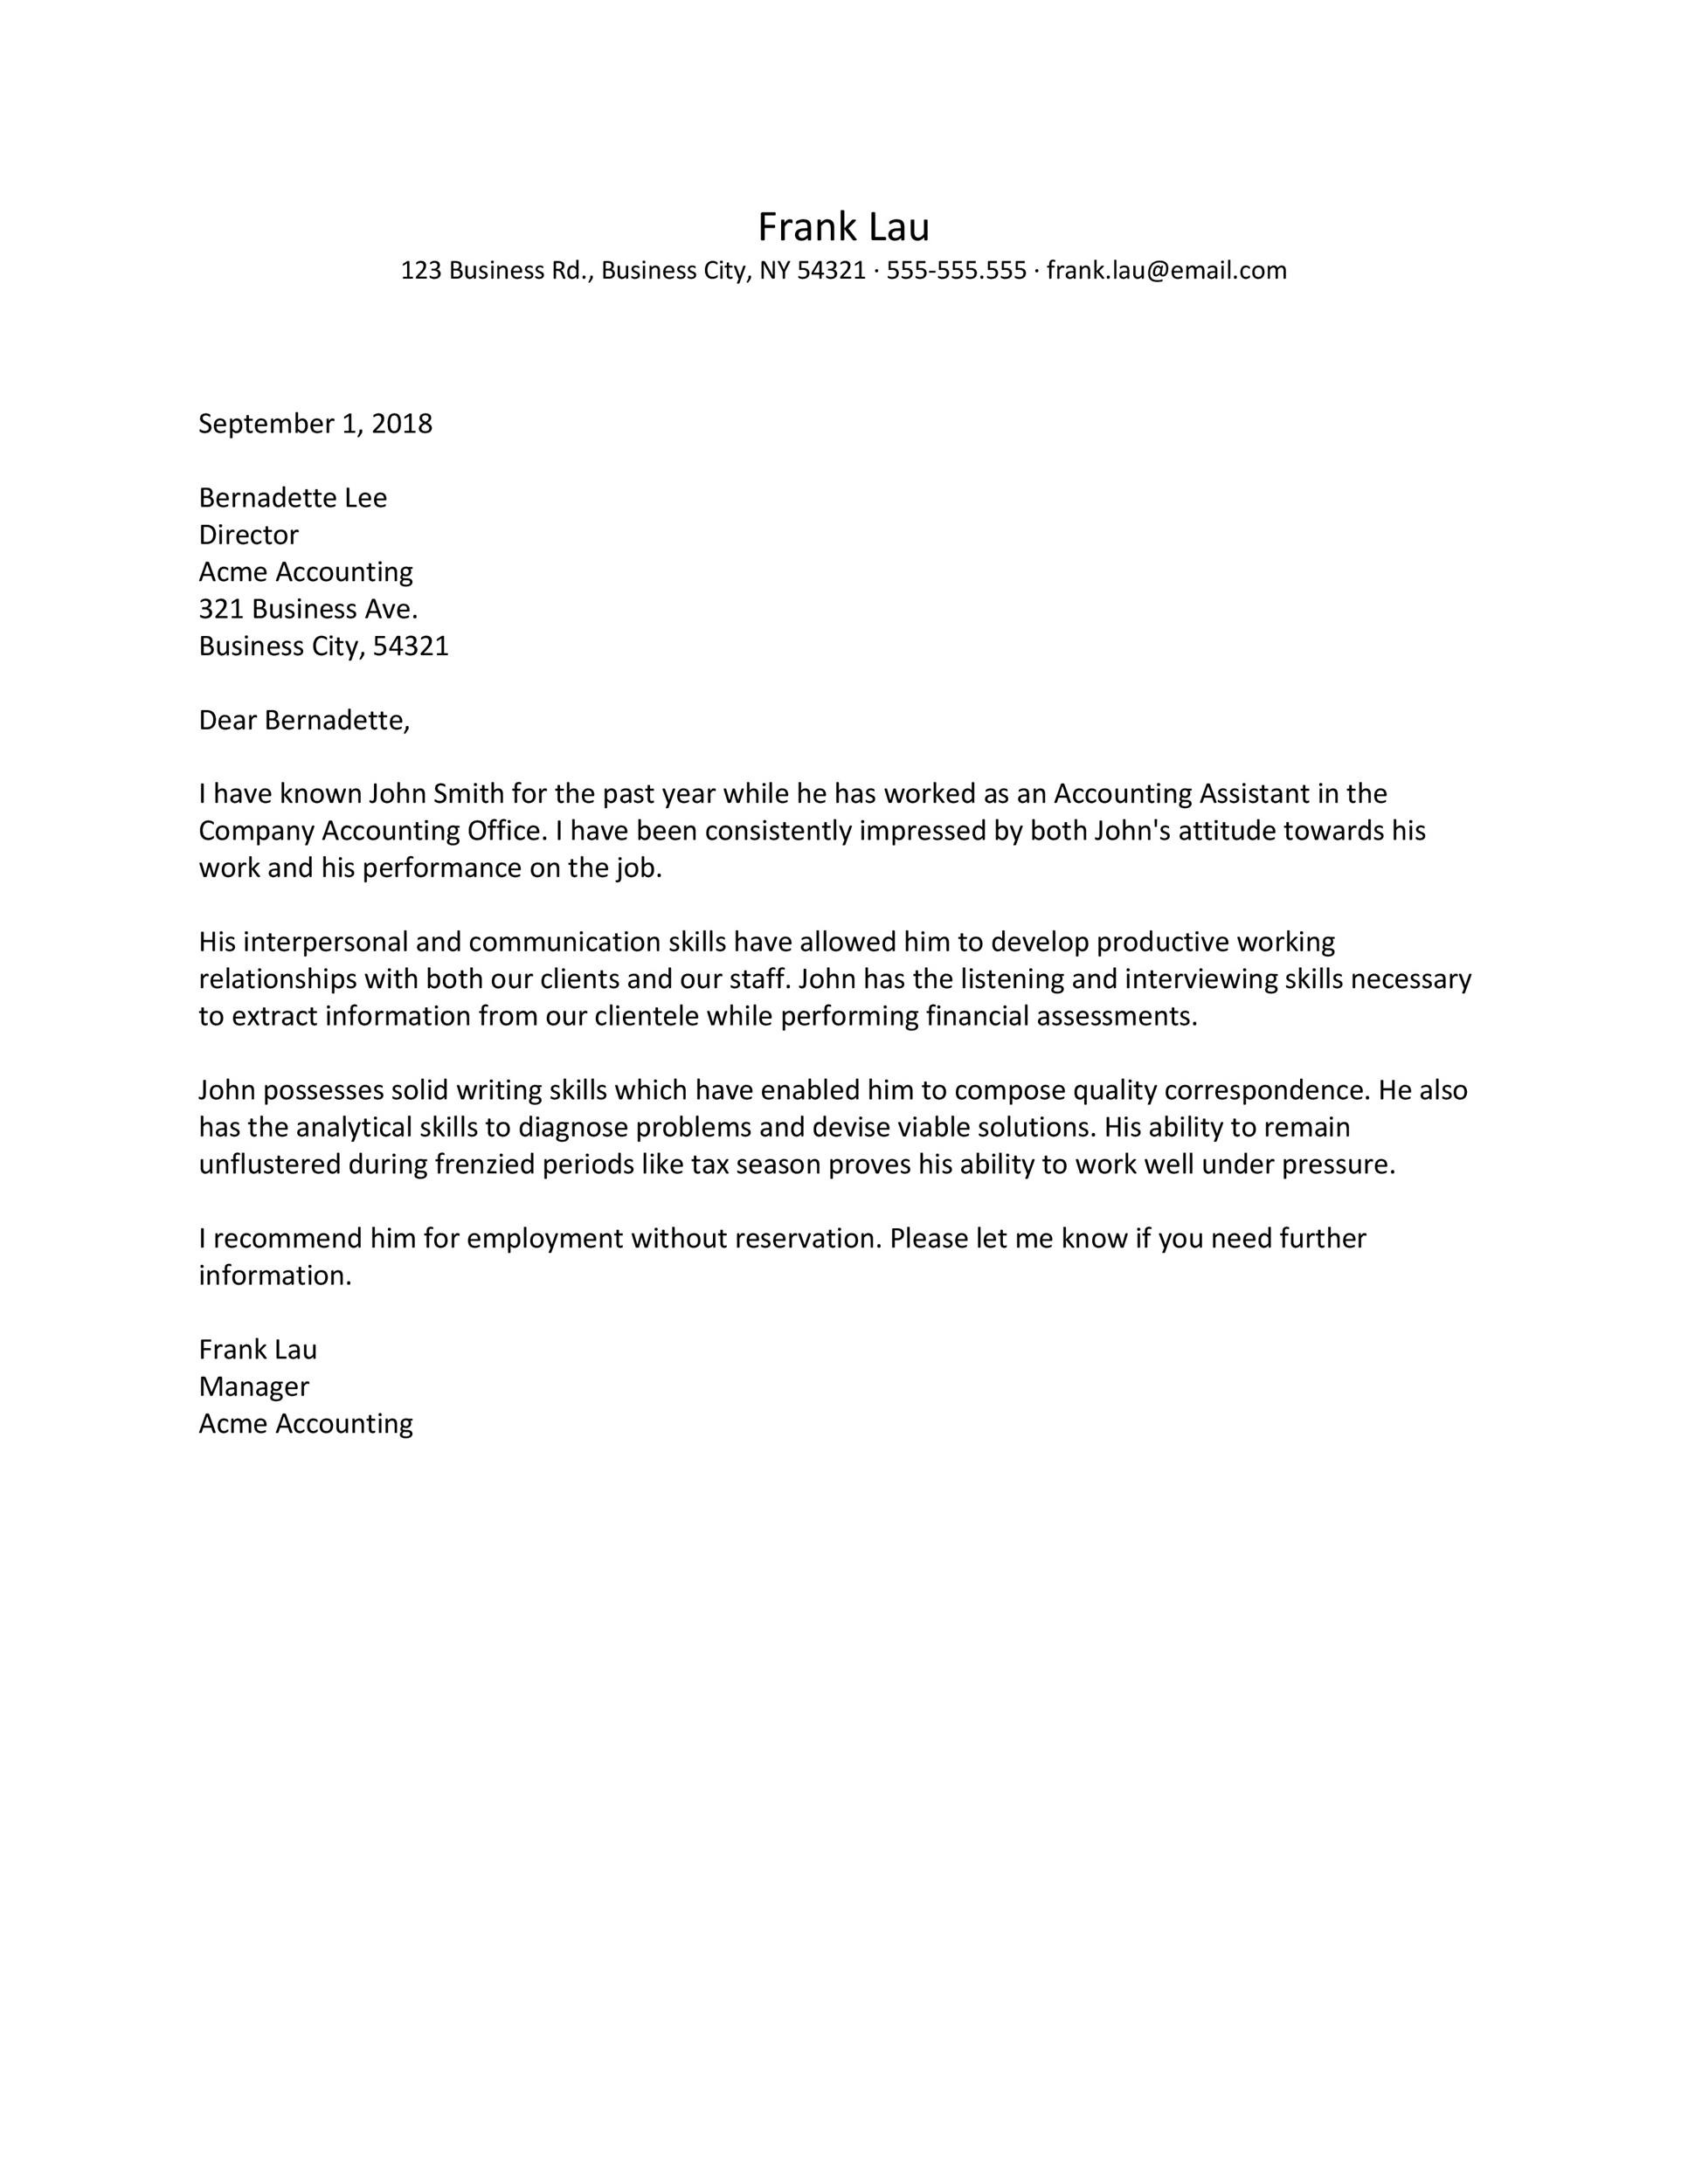 Sample Letter Of Recommendation Employee from templatelab.com